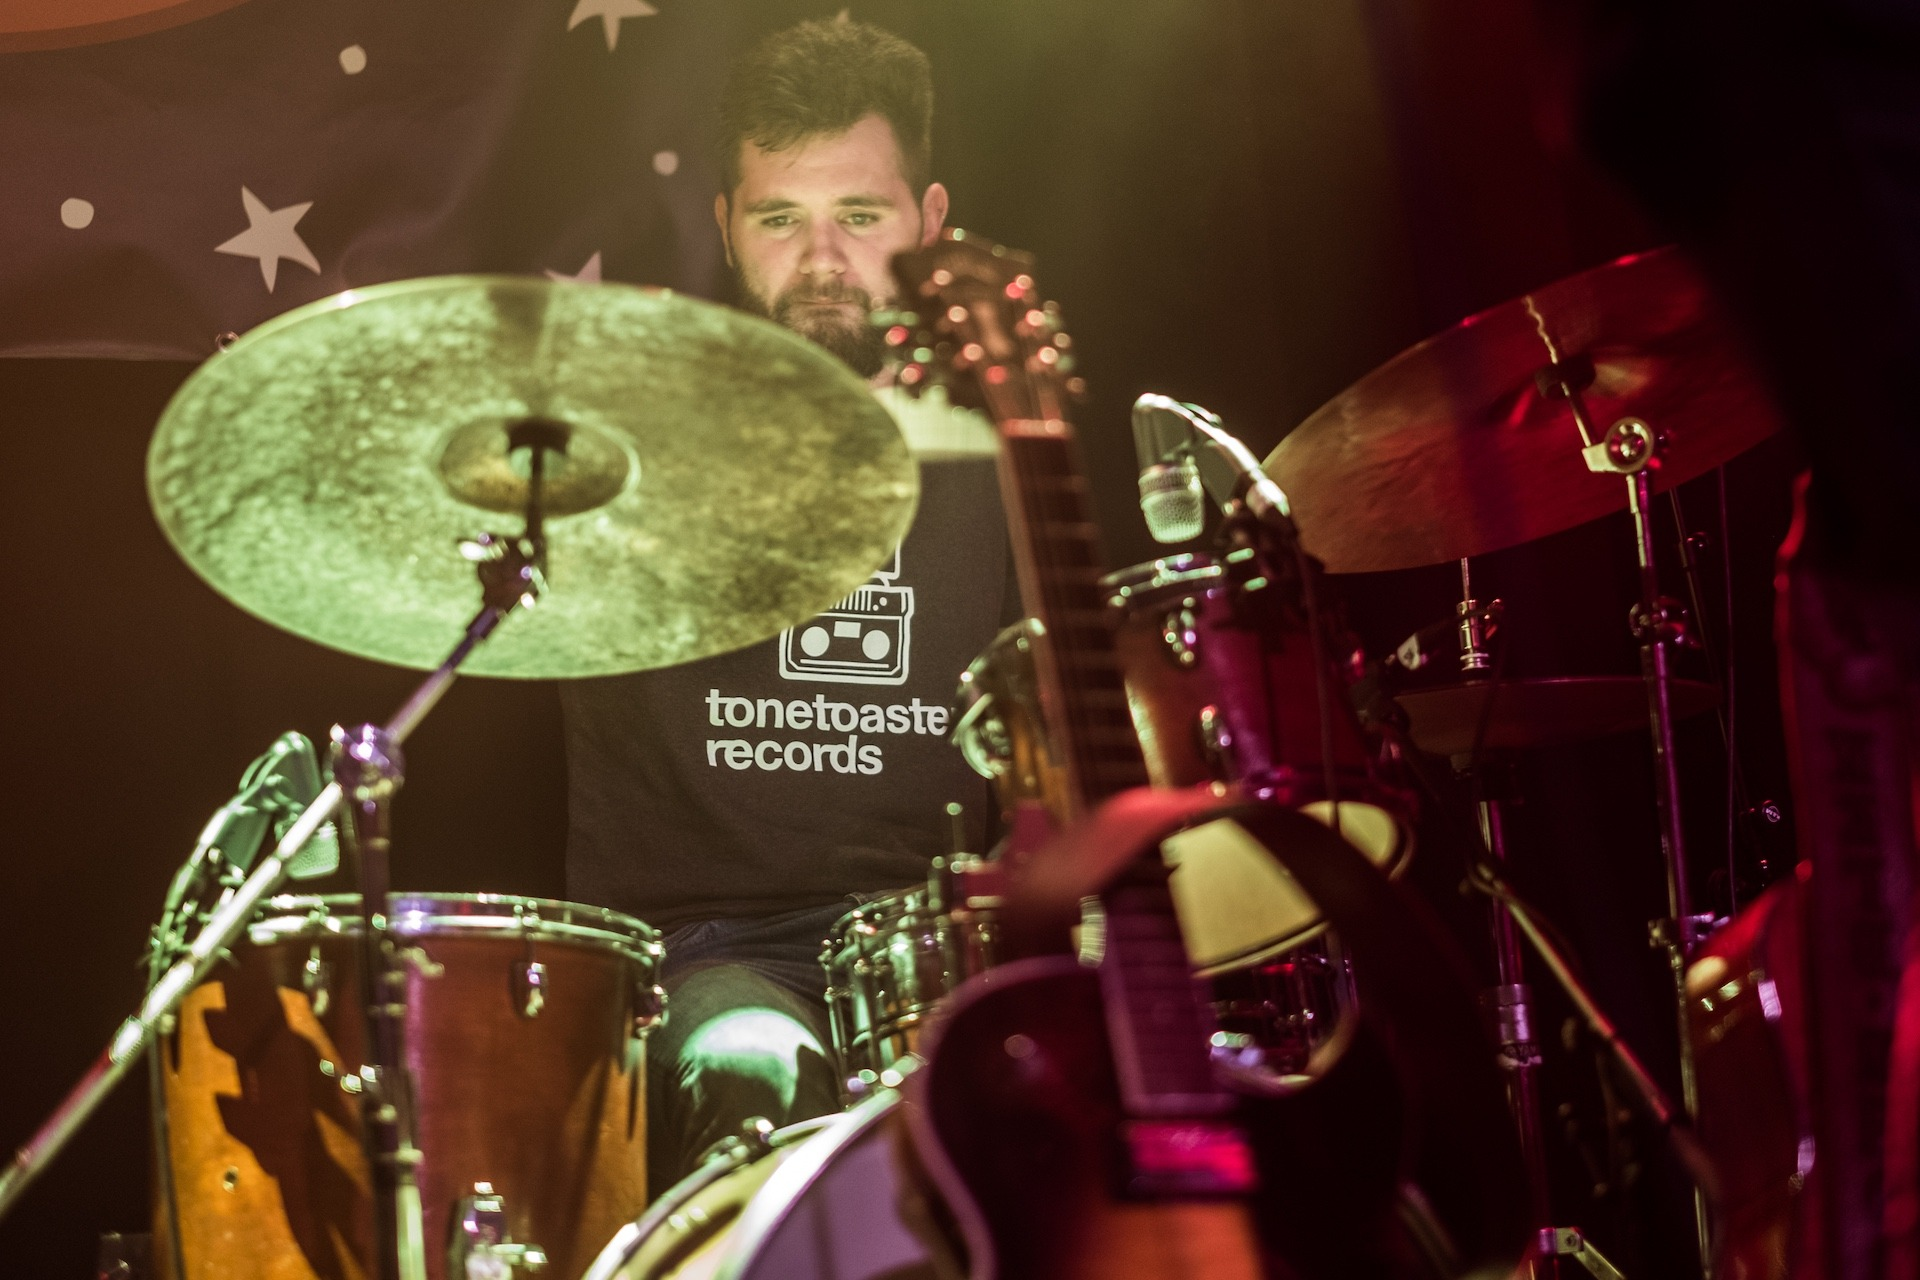 Cian O Sullivan, drums, tonetoaster records t-shirt, Static Roots Festival